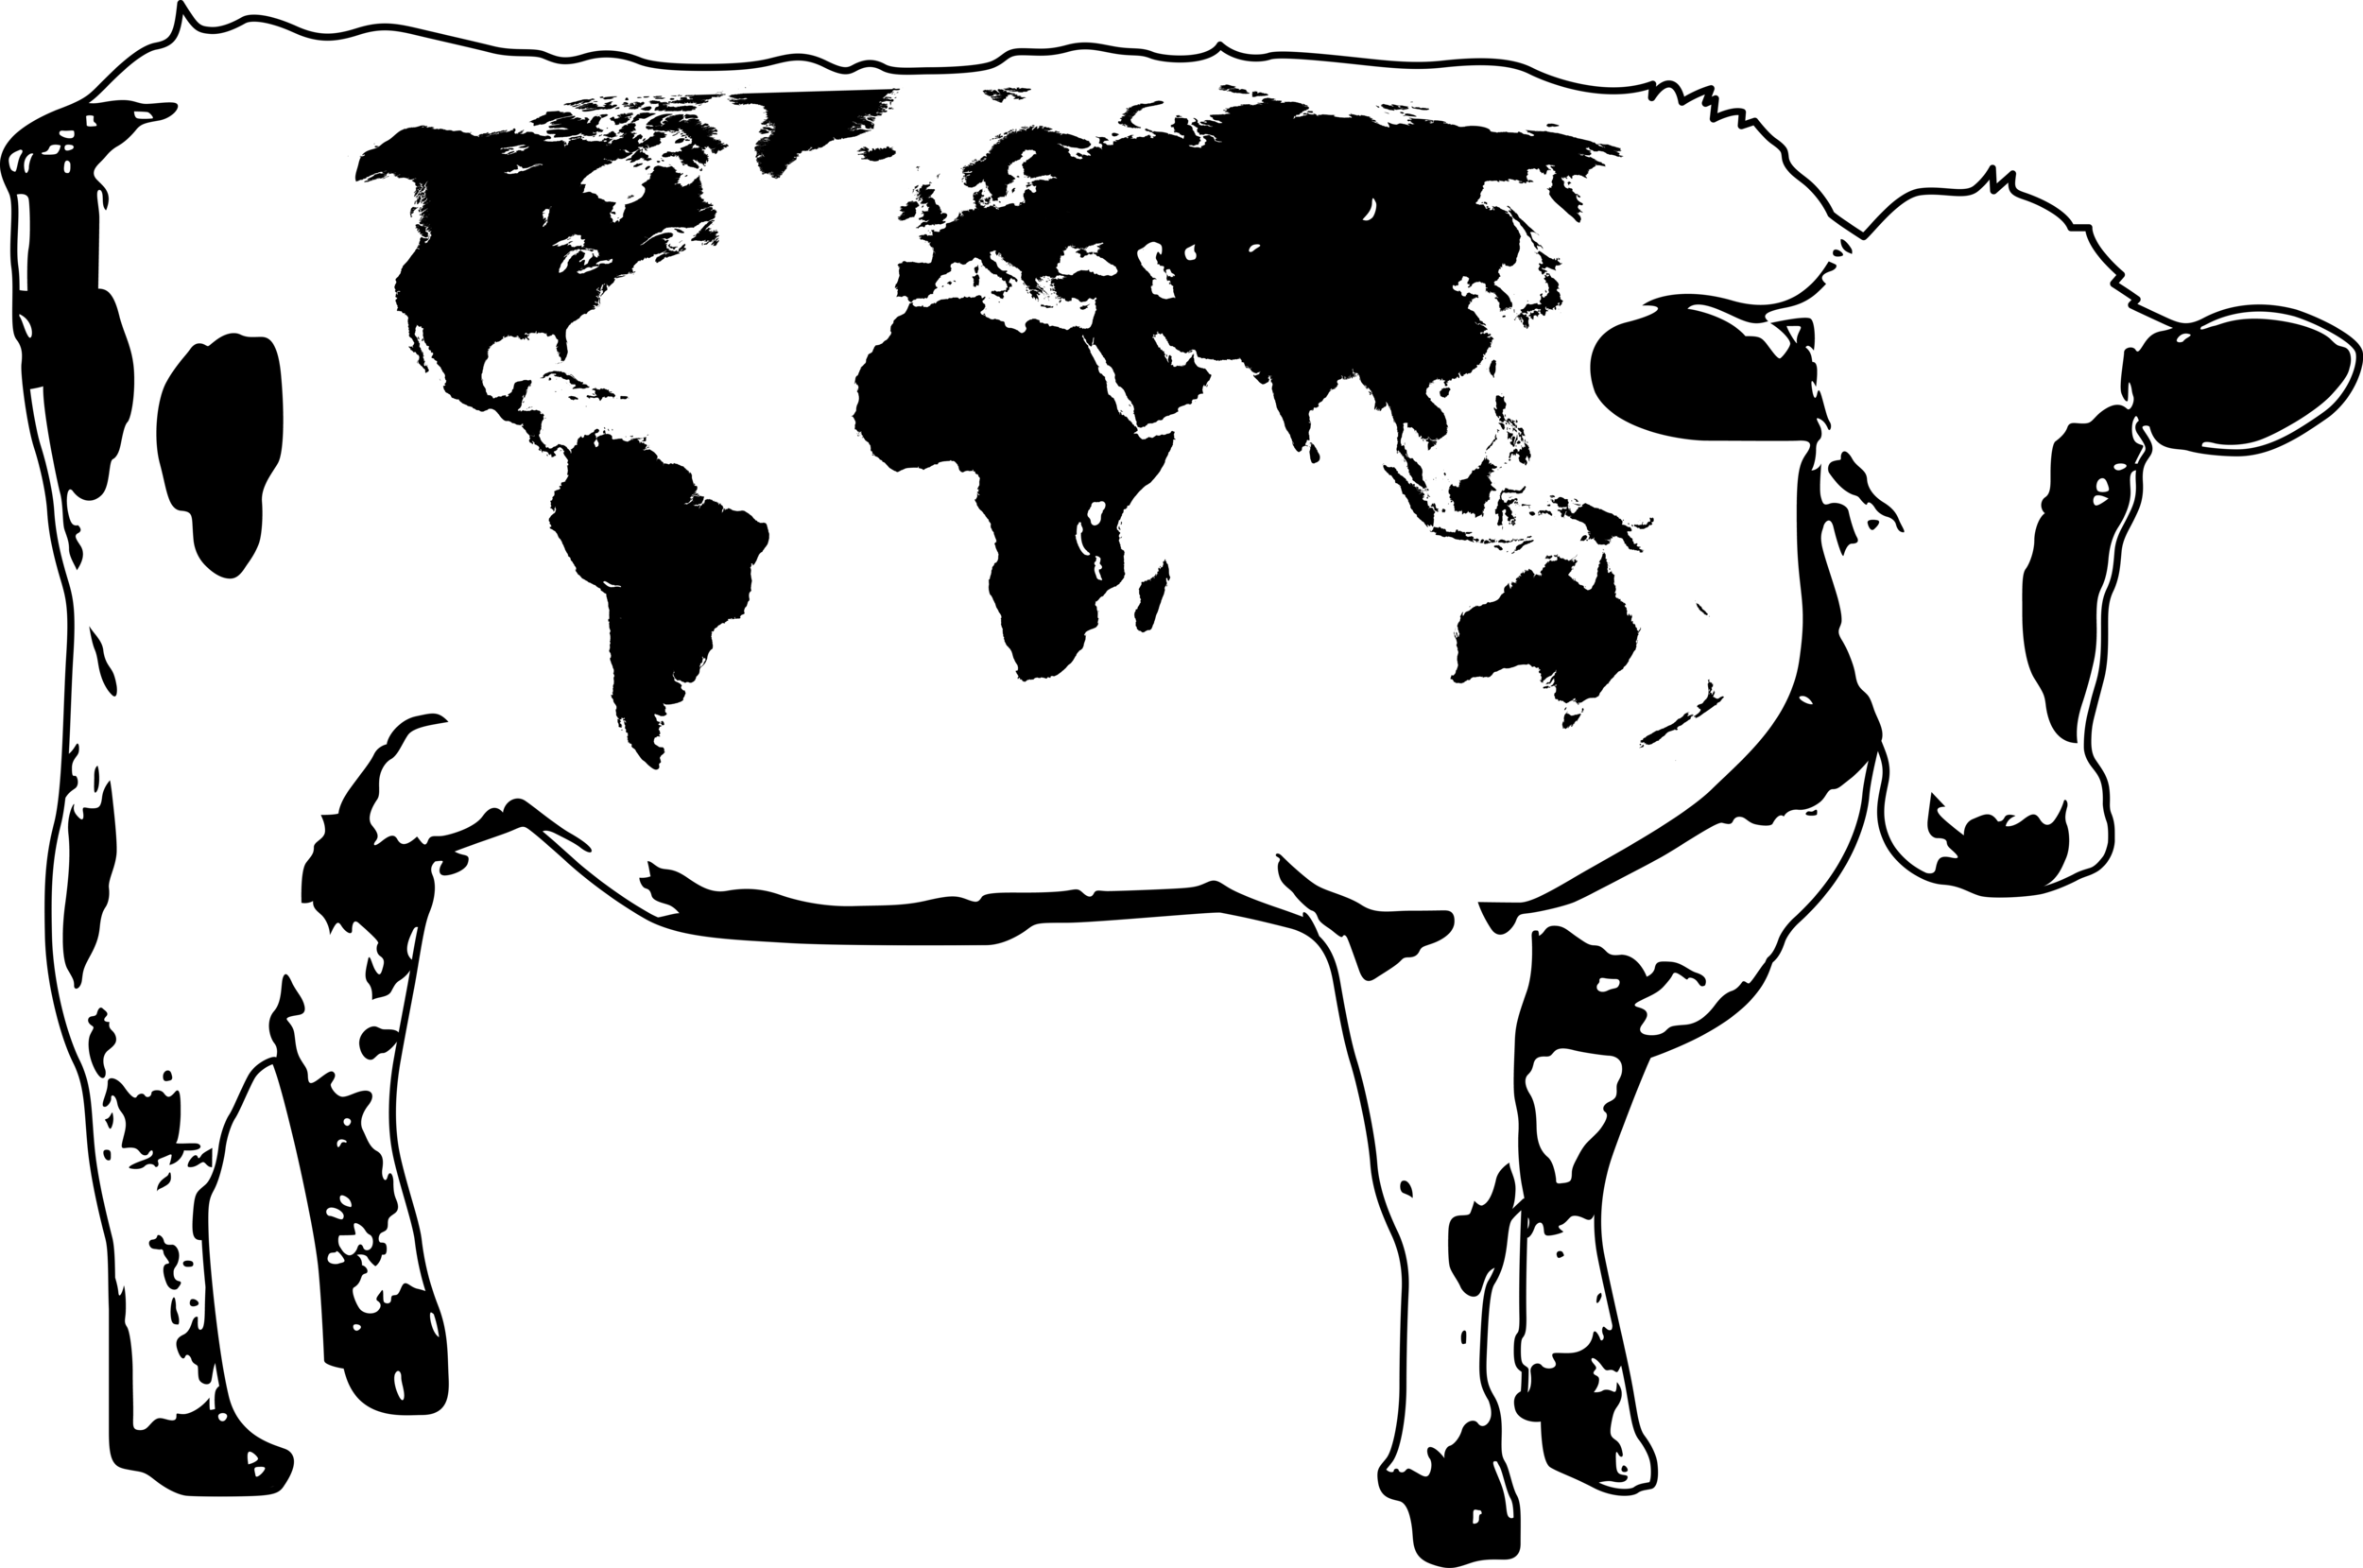 World Cow Chad image.png